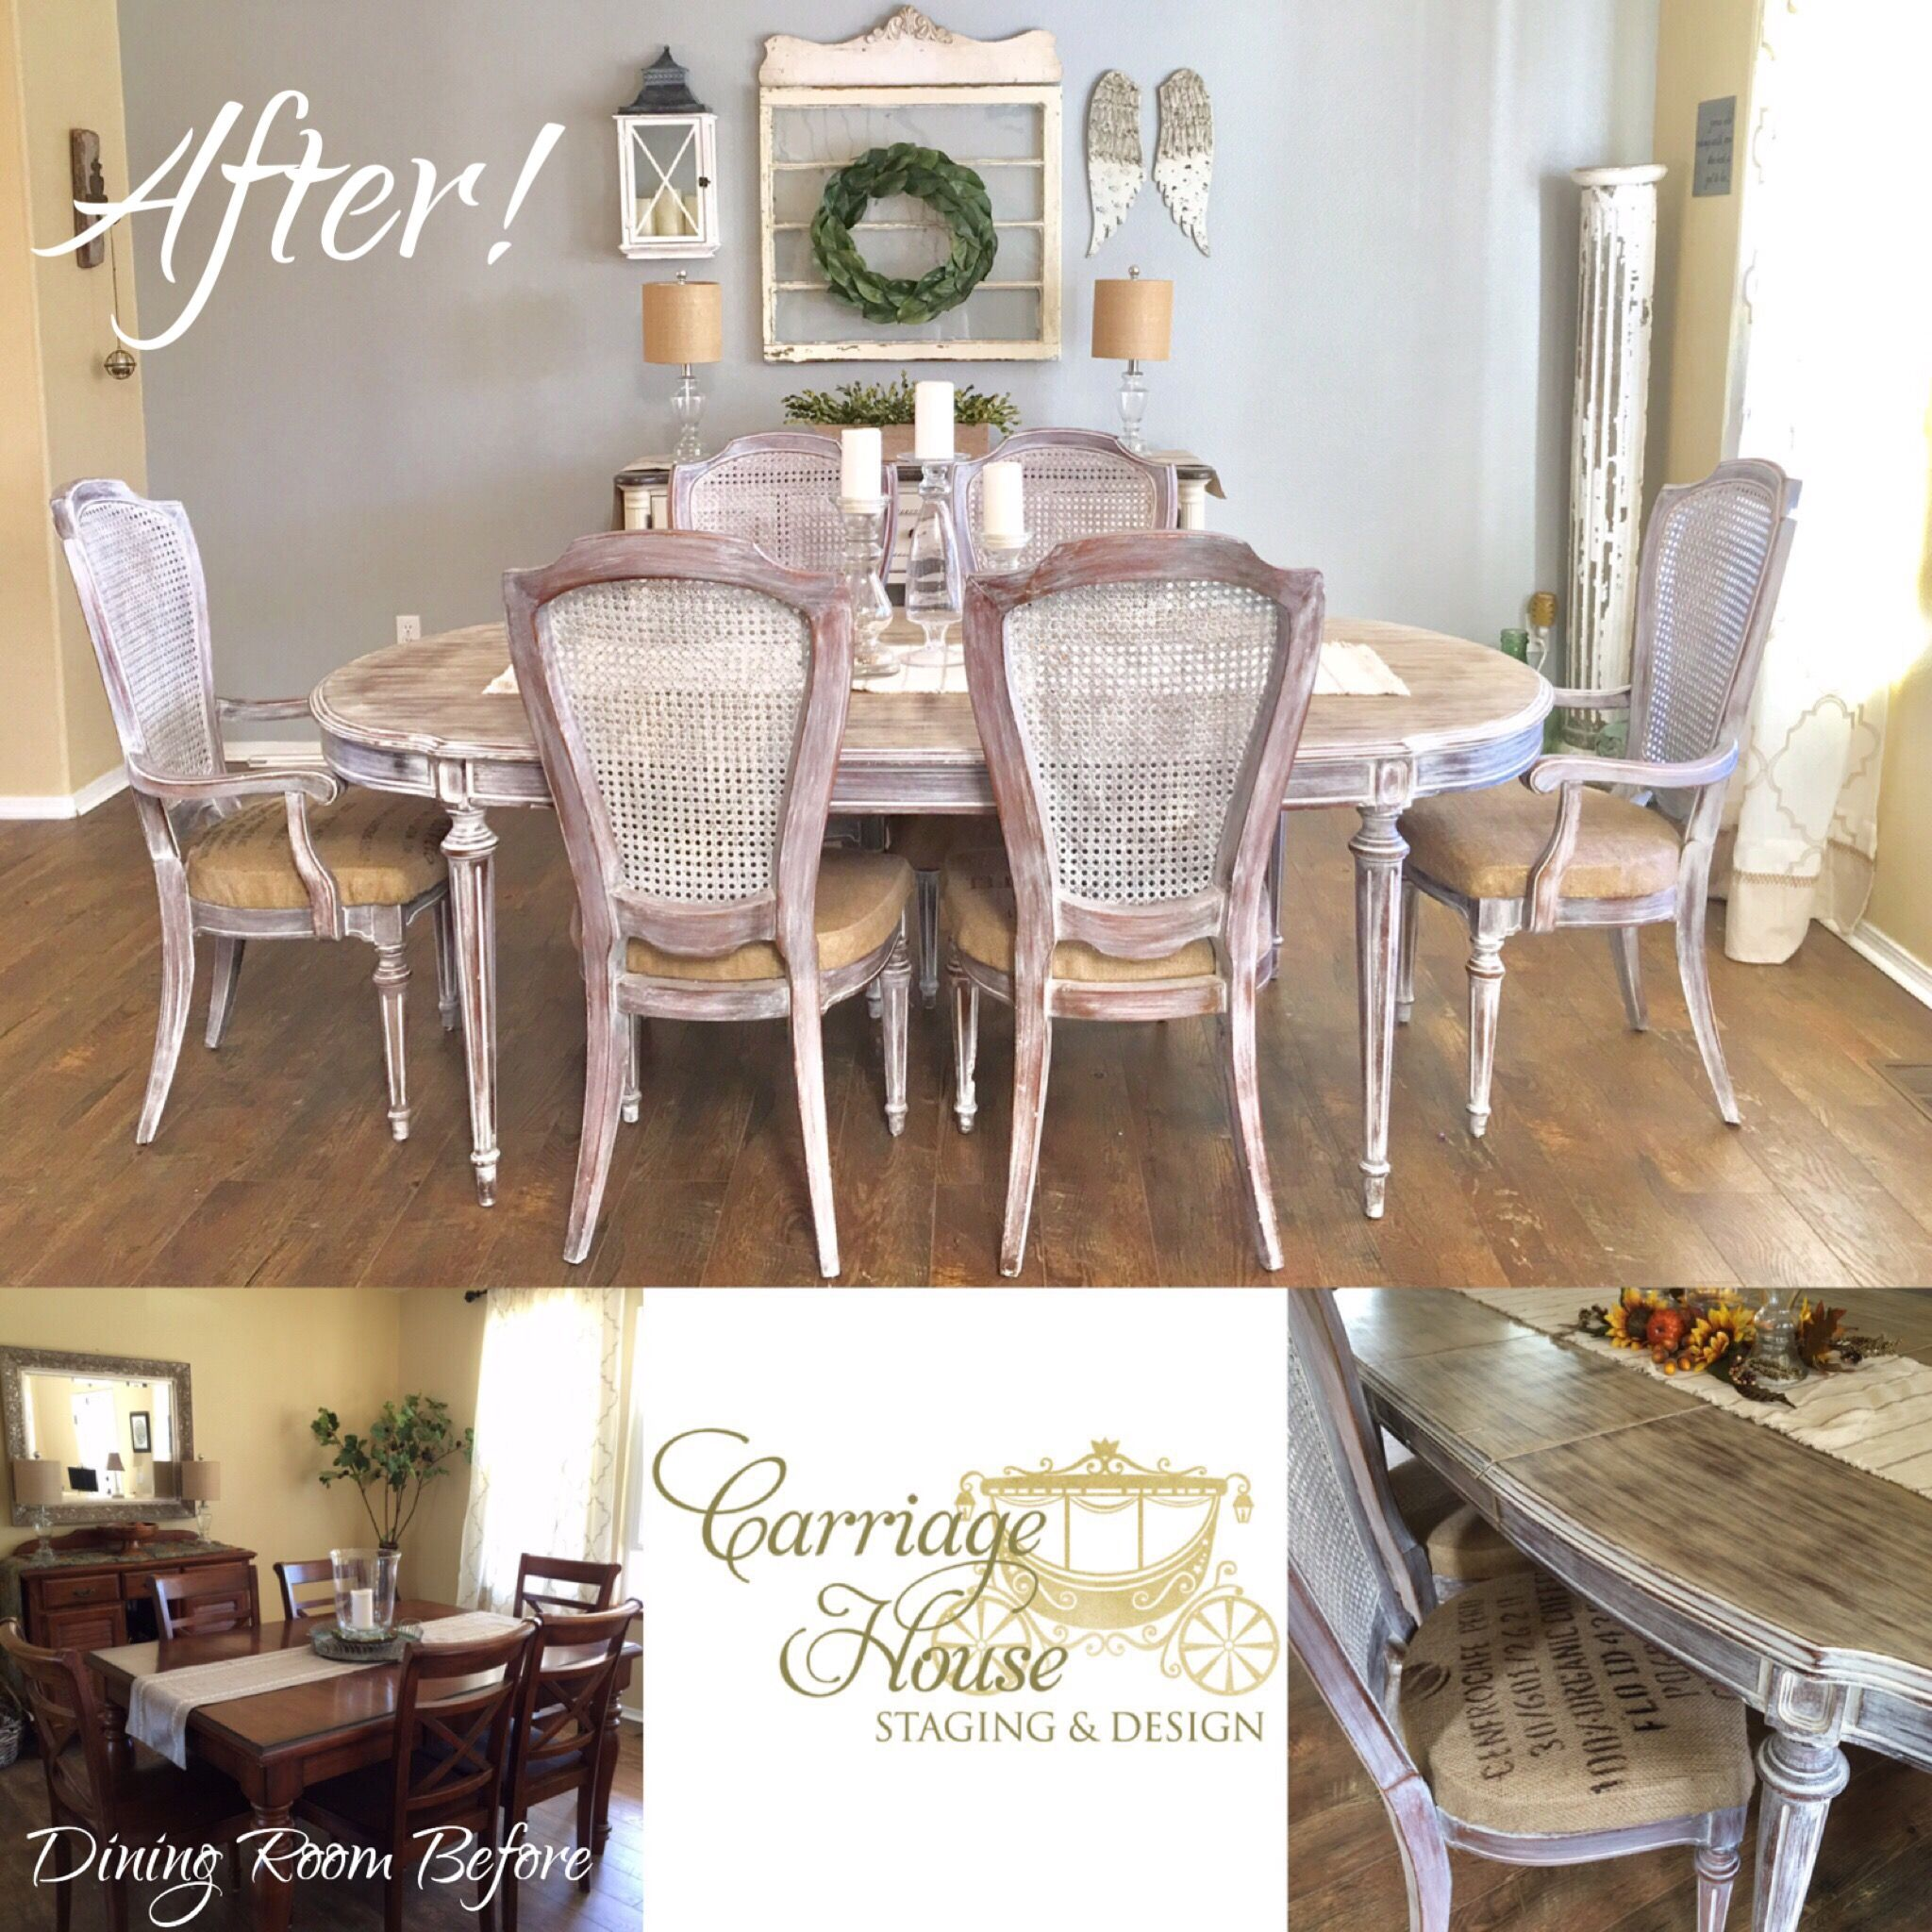 Home Staging Dining Room Table: Carriage House Staging & Design LLC